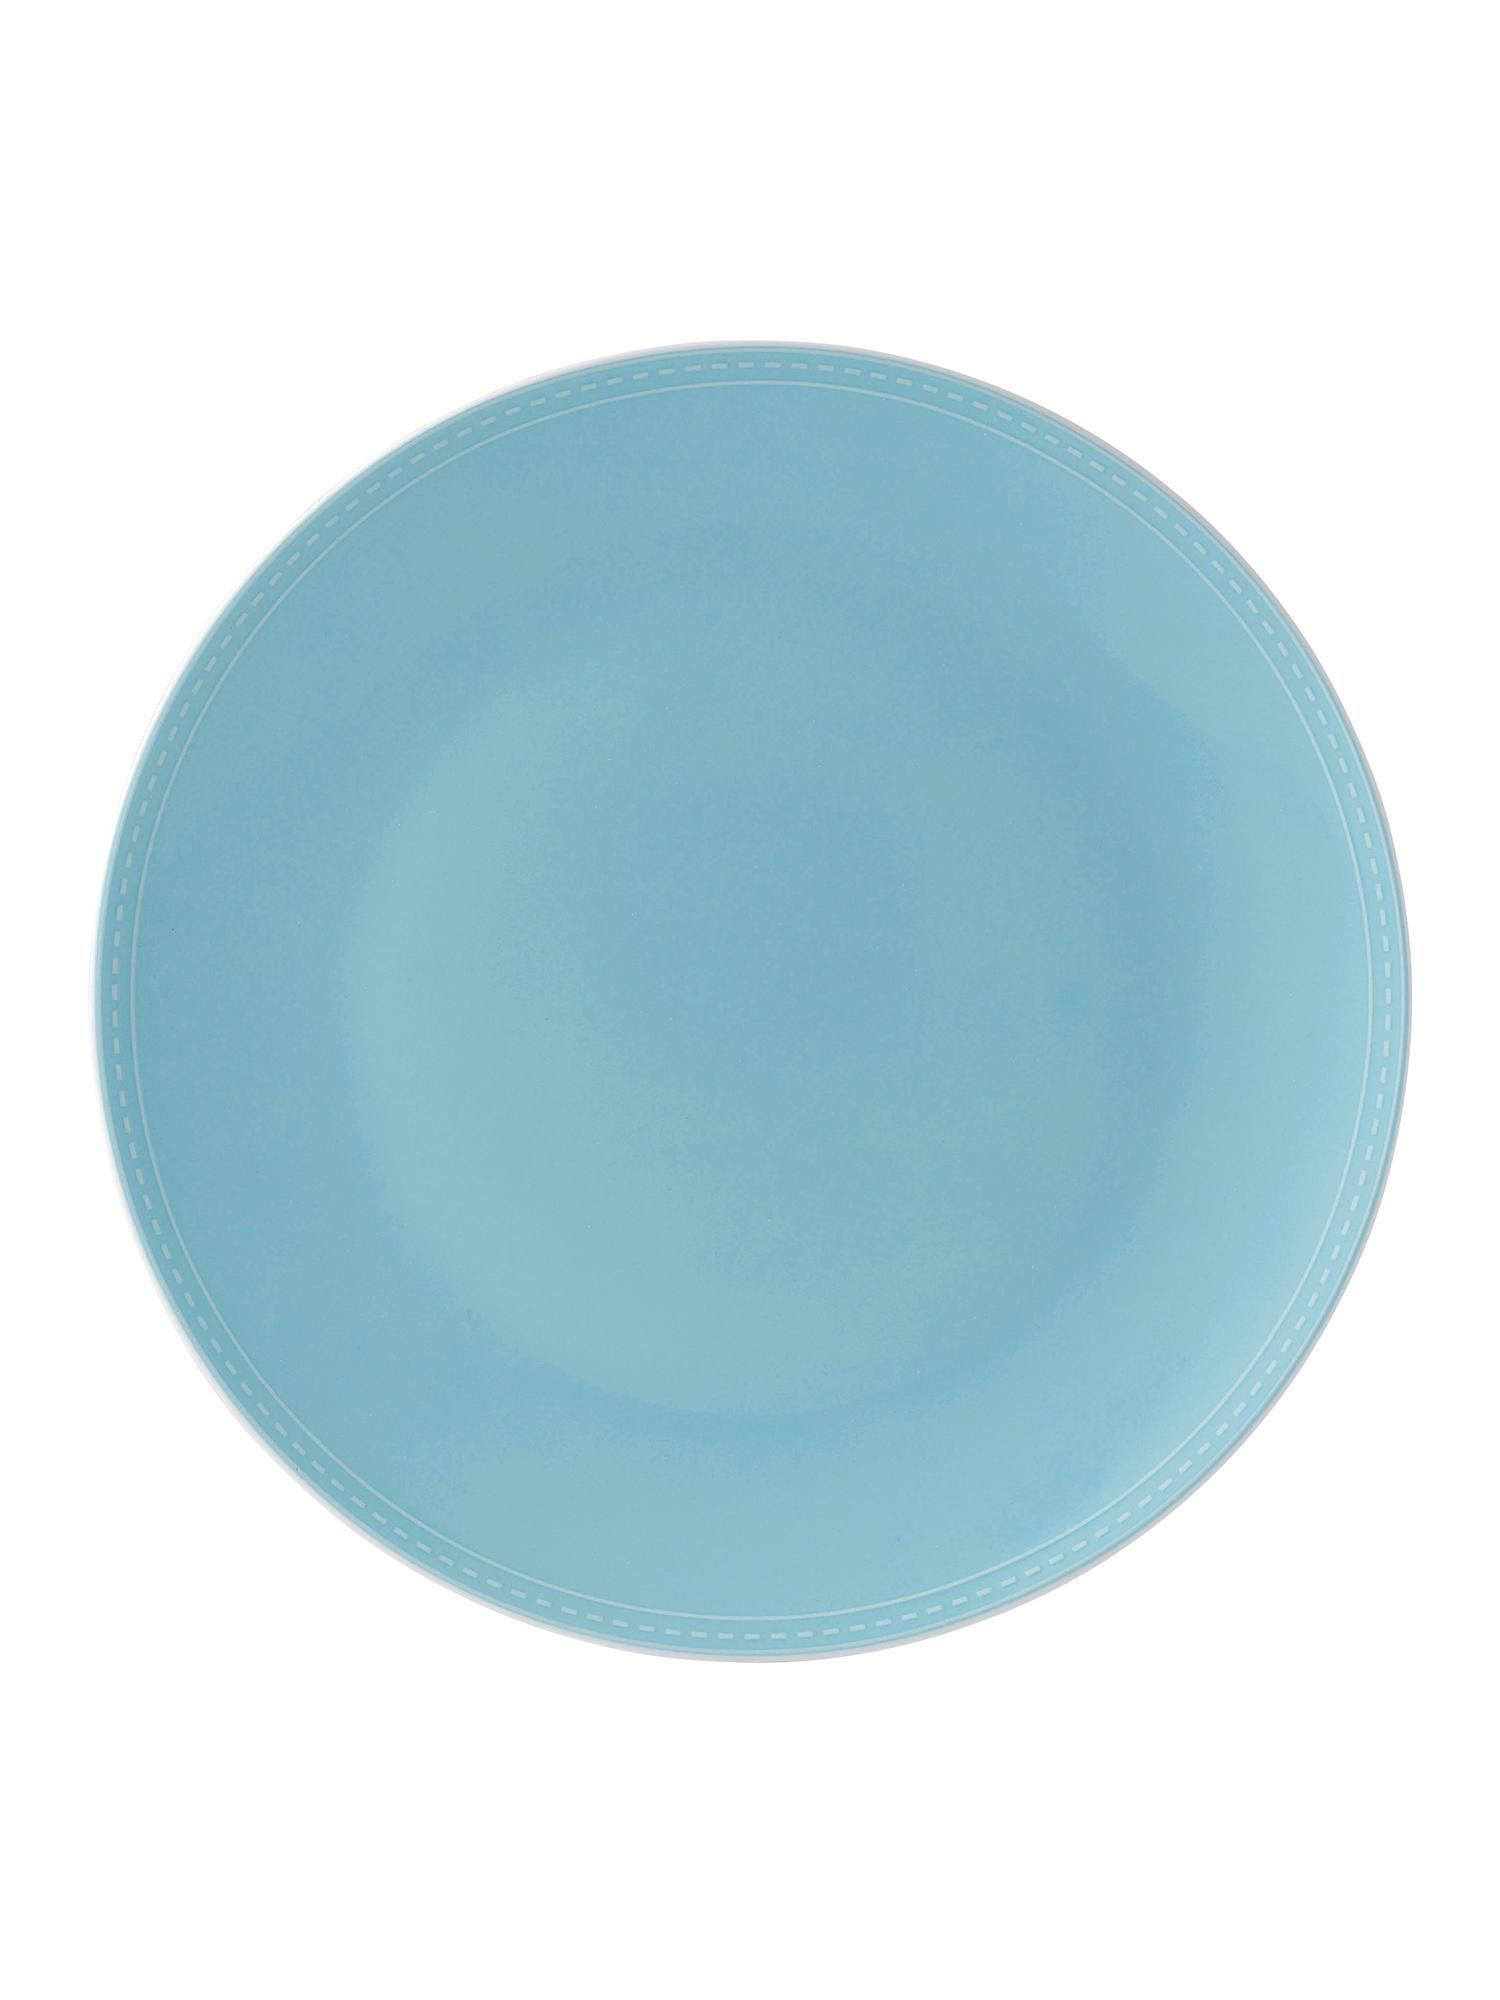 Pure blue 21cm side plate